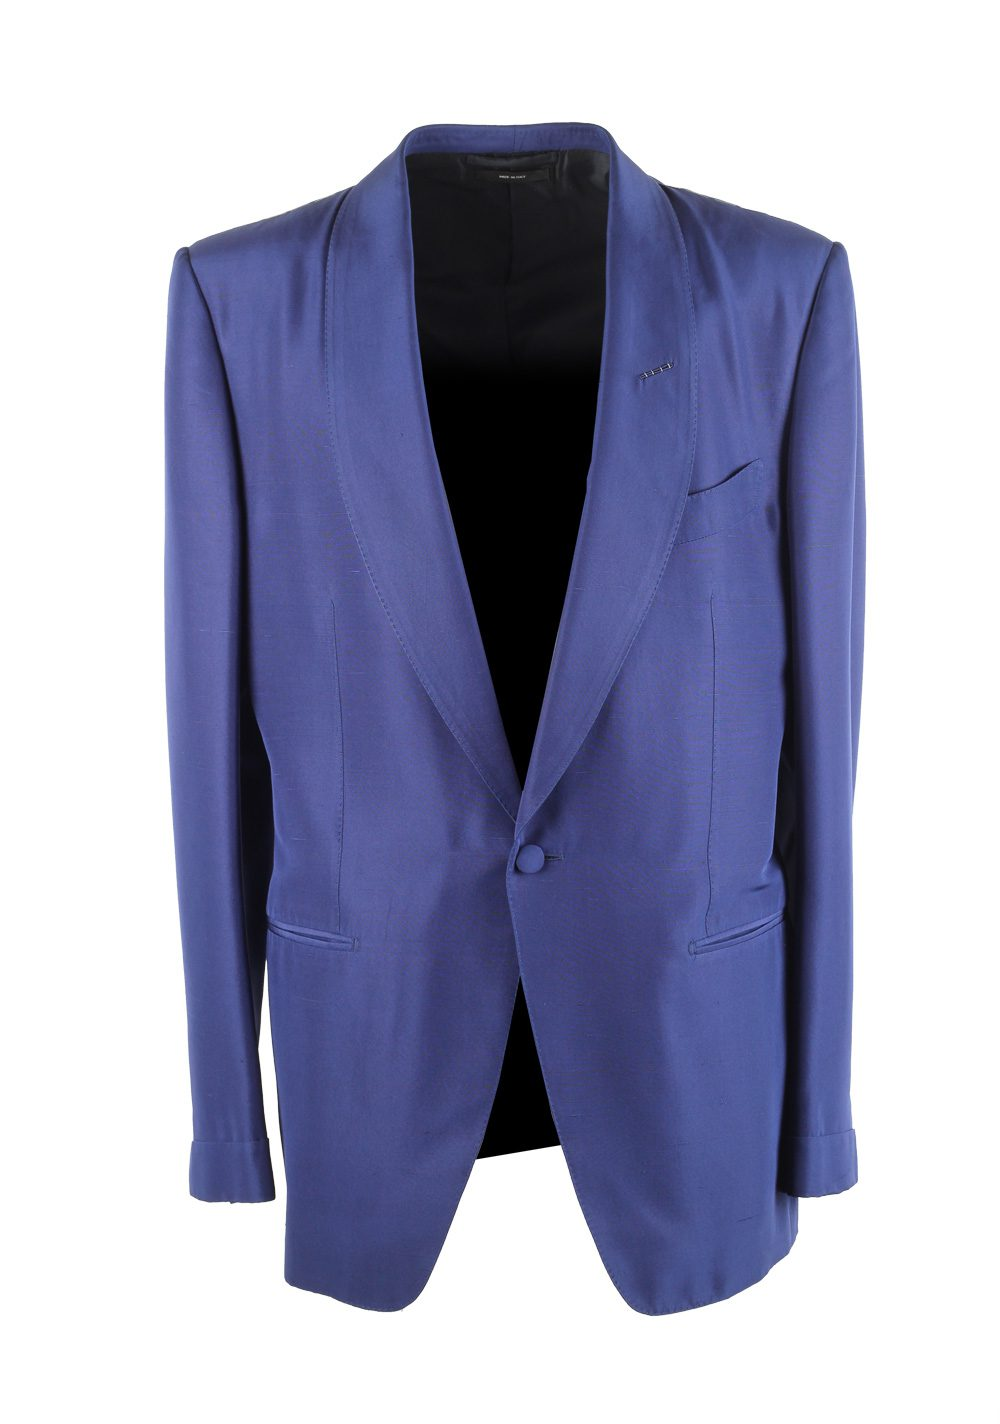 TOM FORD O'Connor Blue Tuxedo Dinner Jacket Size 52 / 42R U.S. Fit S | Costume Limité